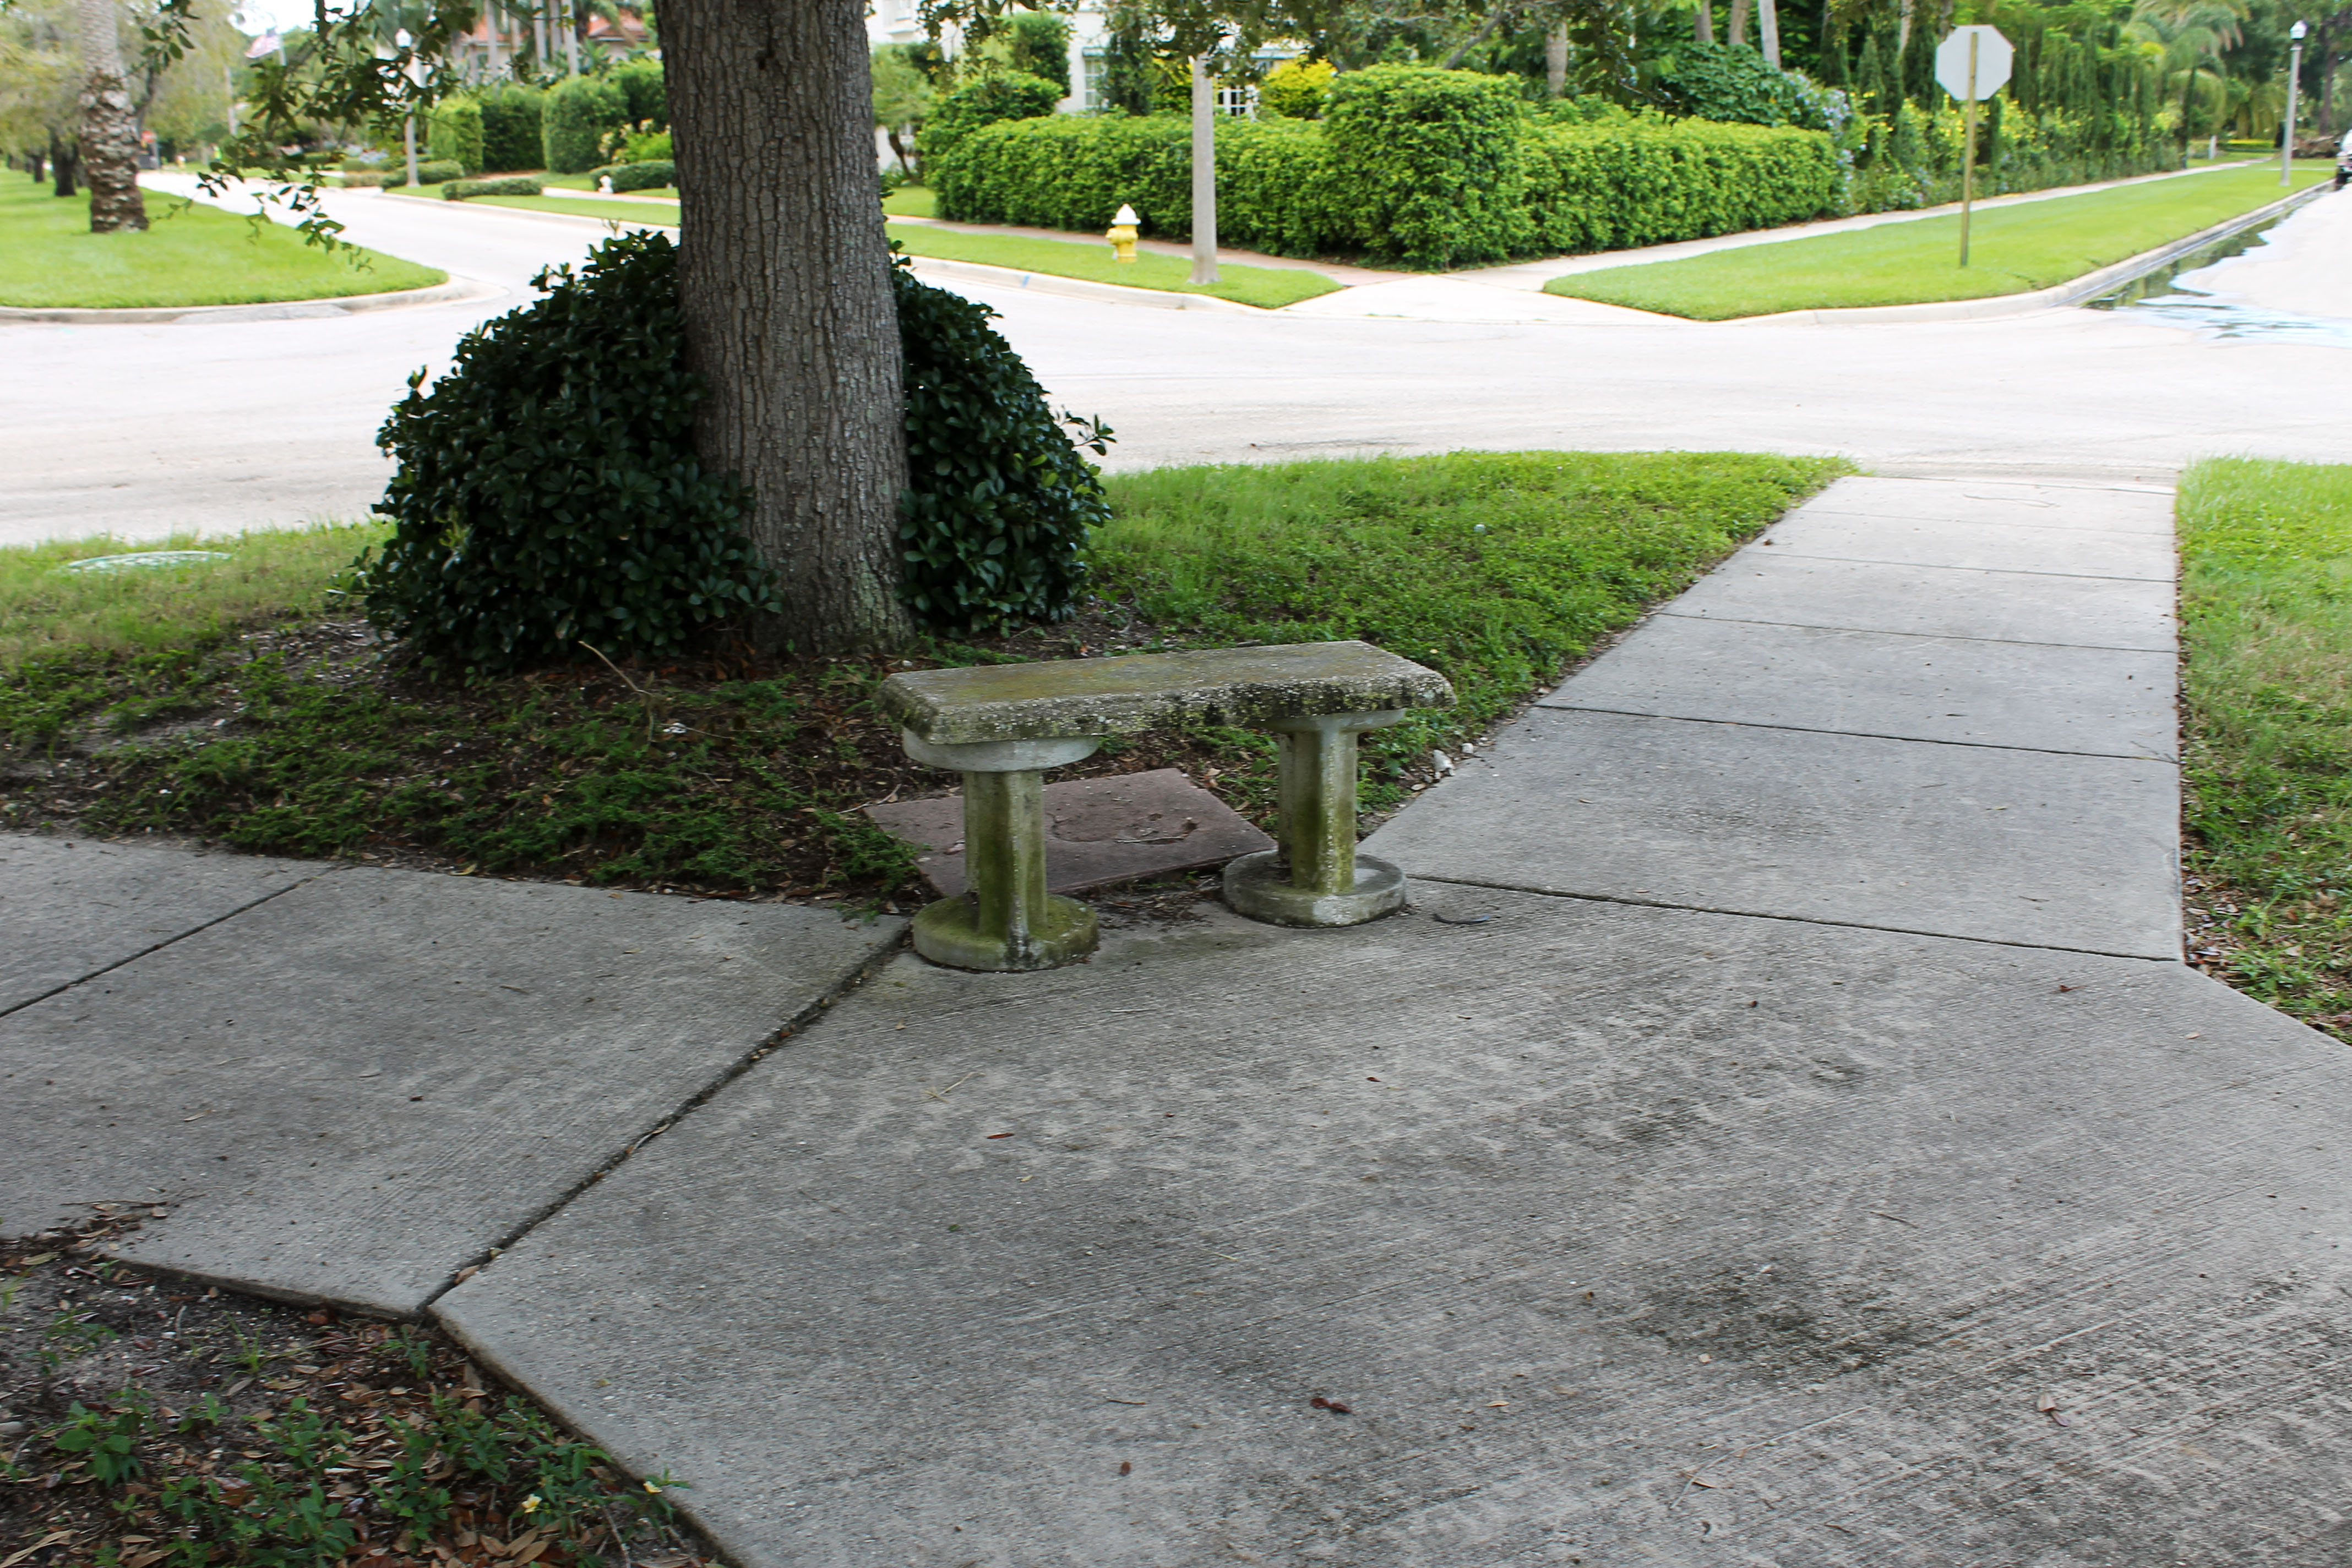 A concrete bench in Palmview Park that sits under a tree and on a sidewalk